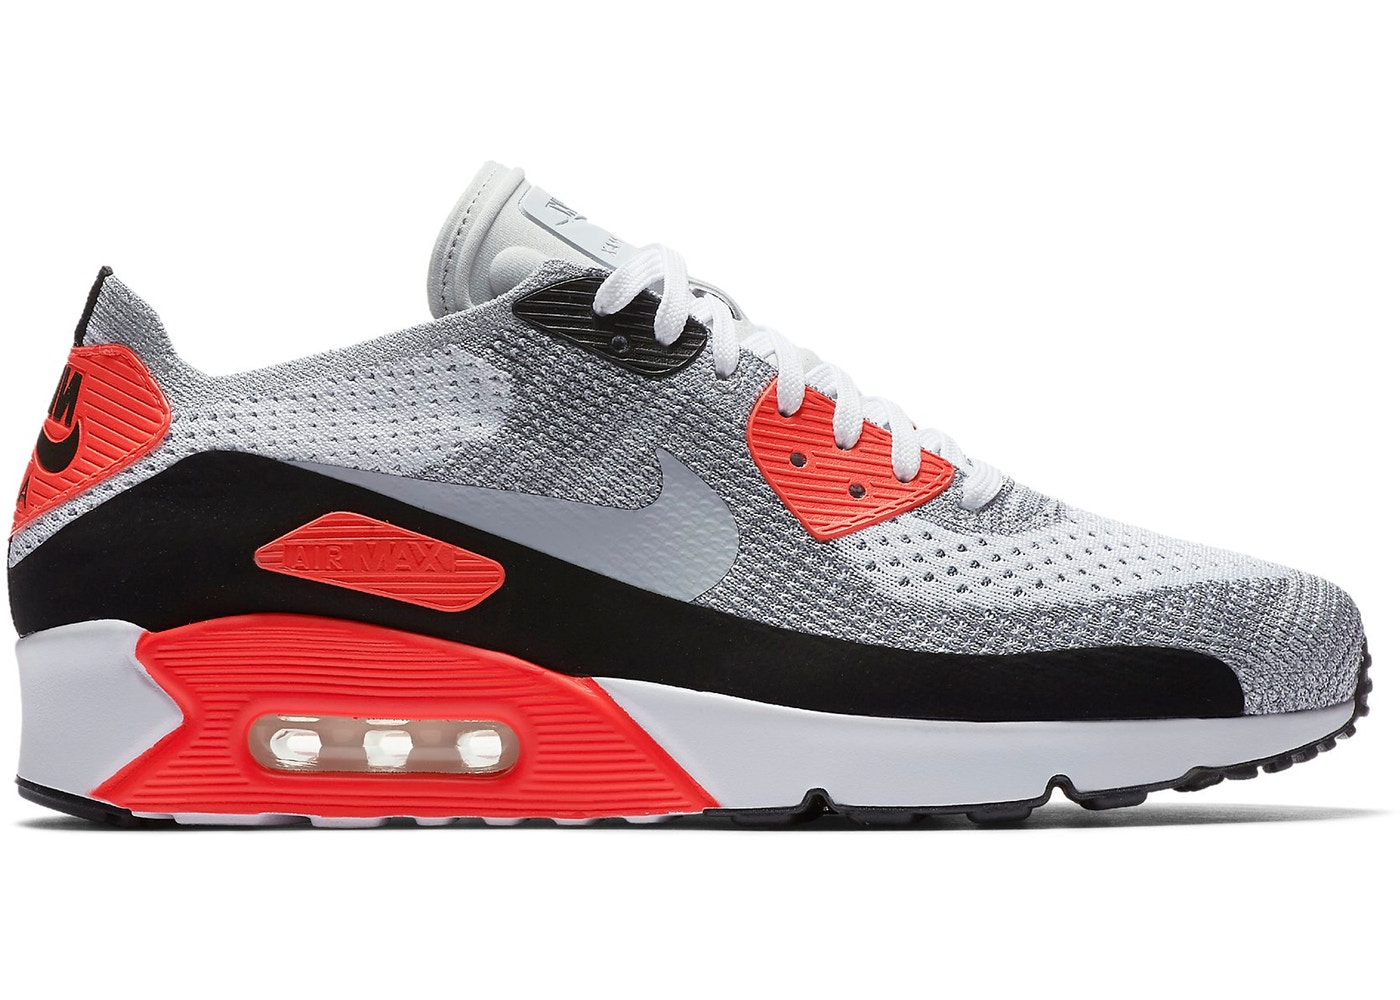 80a2b35b38b71 Air Max 90 Ultra Flyknit 2.0 Infrared - 875943-100